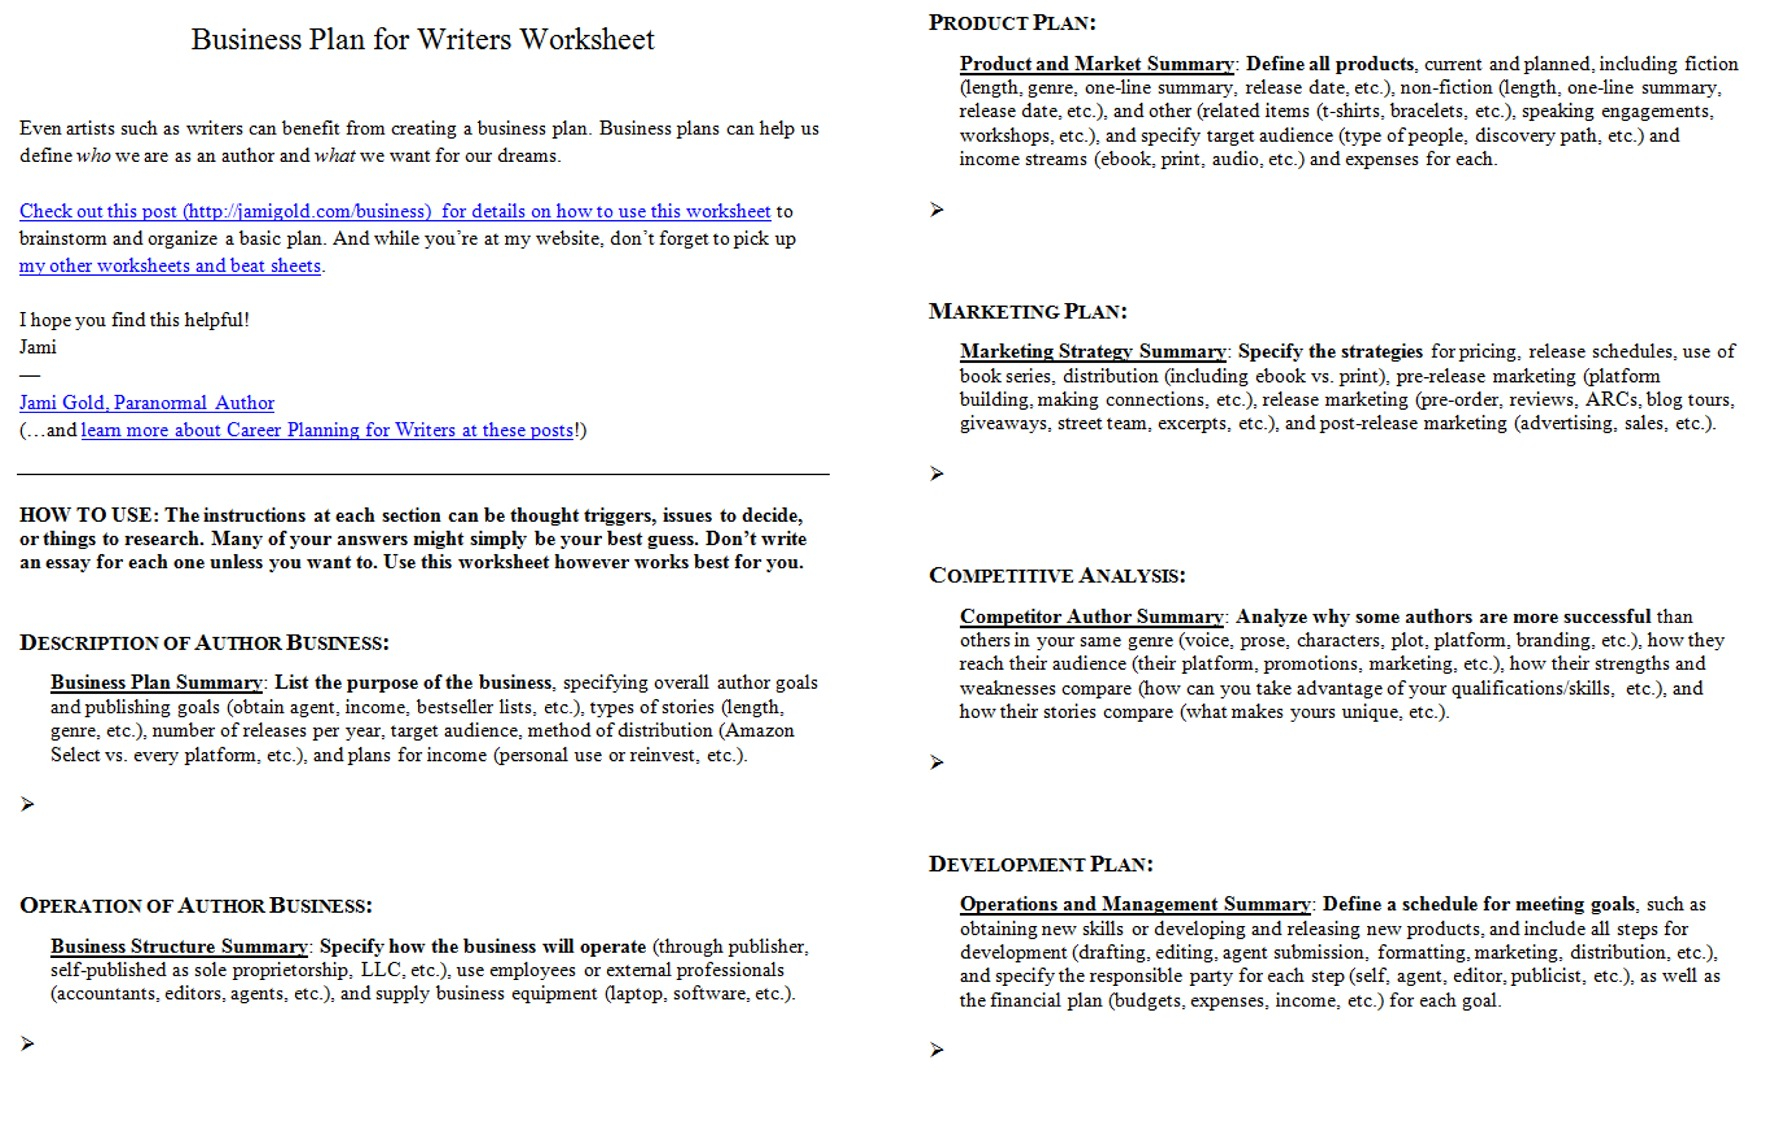 Proatmealus  Unusual Worksheets For Writers  Jami Gold Paranormal Author With Lovable Screen Shot Of Both Pages Of The Business Plan For Writers Worksheet With Breathtaking Cpo Science Worksheets Also Rounding To Nearest Hundred Worksheet In Addition Shape Matching Worksheet And Get The Point Math Worksheet As Well As Reflection Translation Rotation Worksheet Additionally Transformation Worksheets With Answers From Jamigoldcom With Proatmealus  Lovable Worksheets For Writers  Jami Gold Paranormal Author With Breathtaking Screen Shot Of Both Pages Of The Business Plan For Writers Worksheet And Unusual Cpo Science Worksheets Also Rounding To Nearest Hundred Worksheet In Addition Shape Matching Worksheet From Jamigoldcom